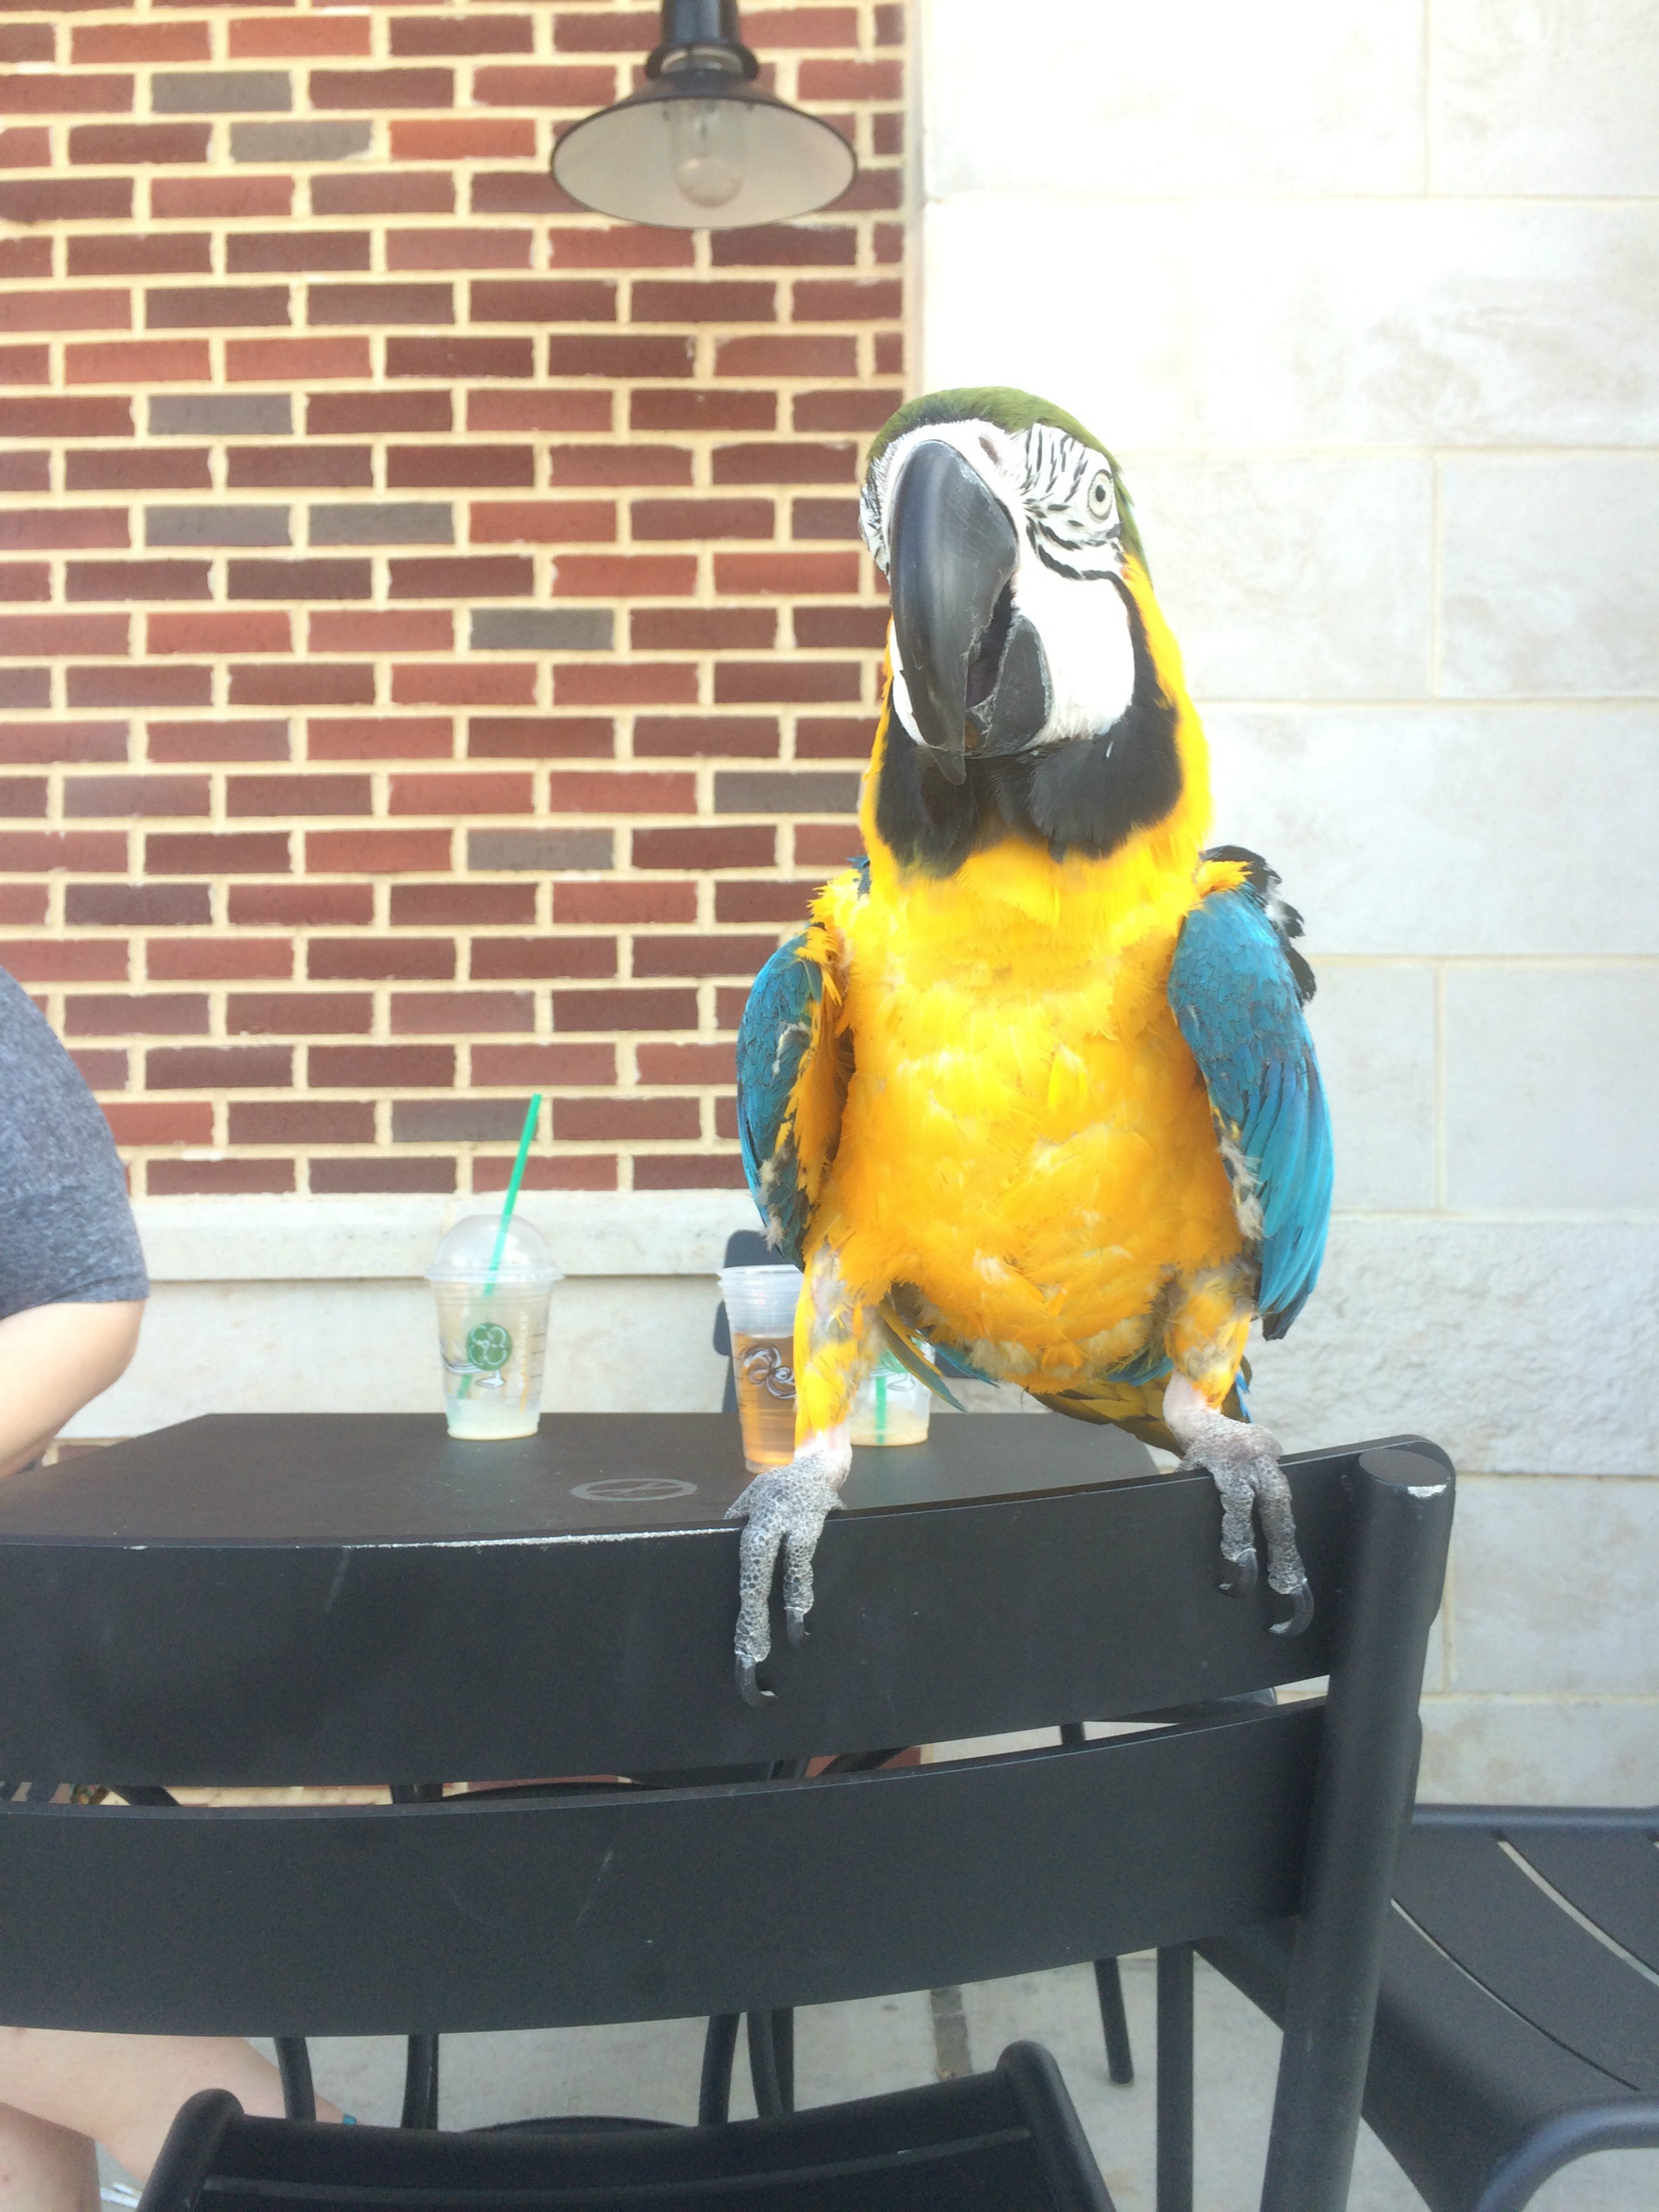 1-1-image-1-Booger-Just-hanging-out-at-Starbucks.jpg